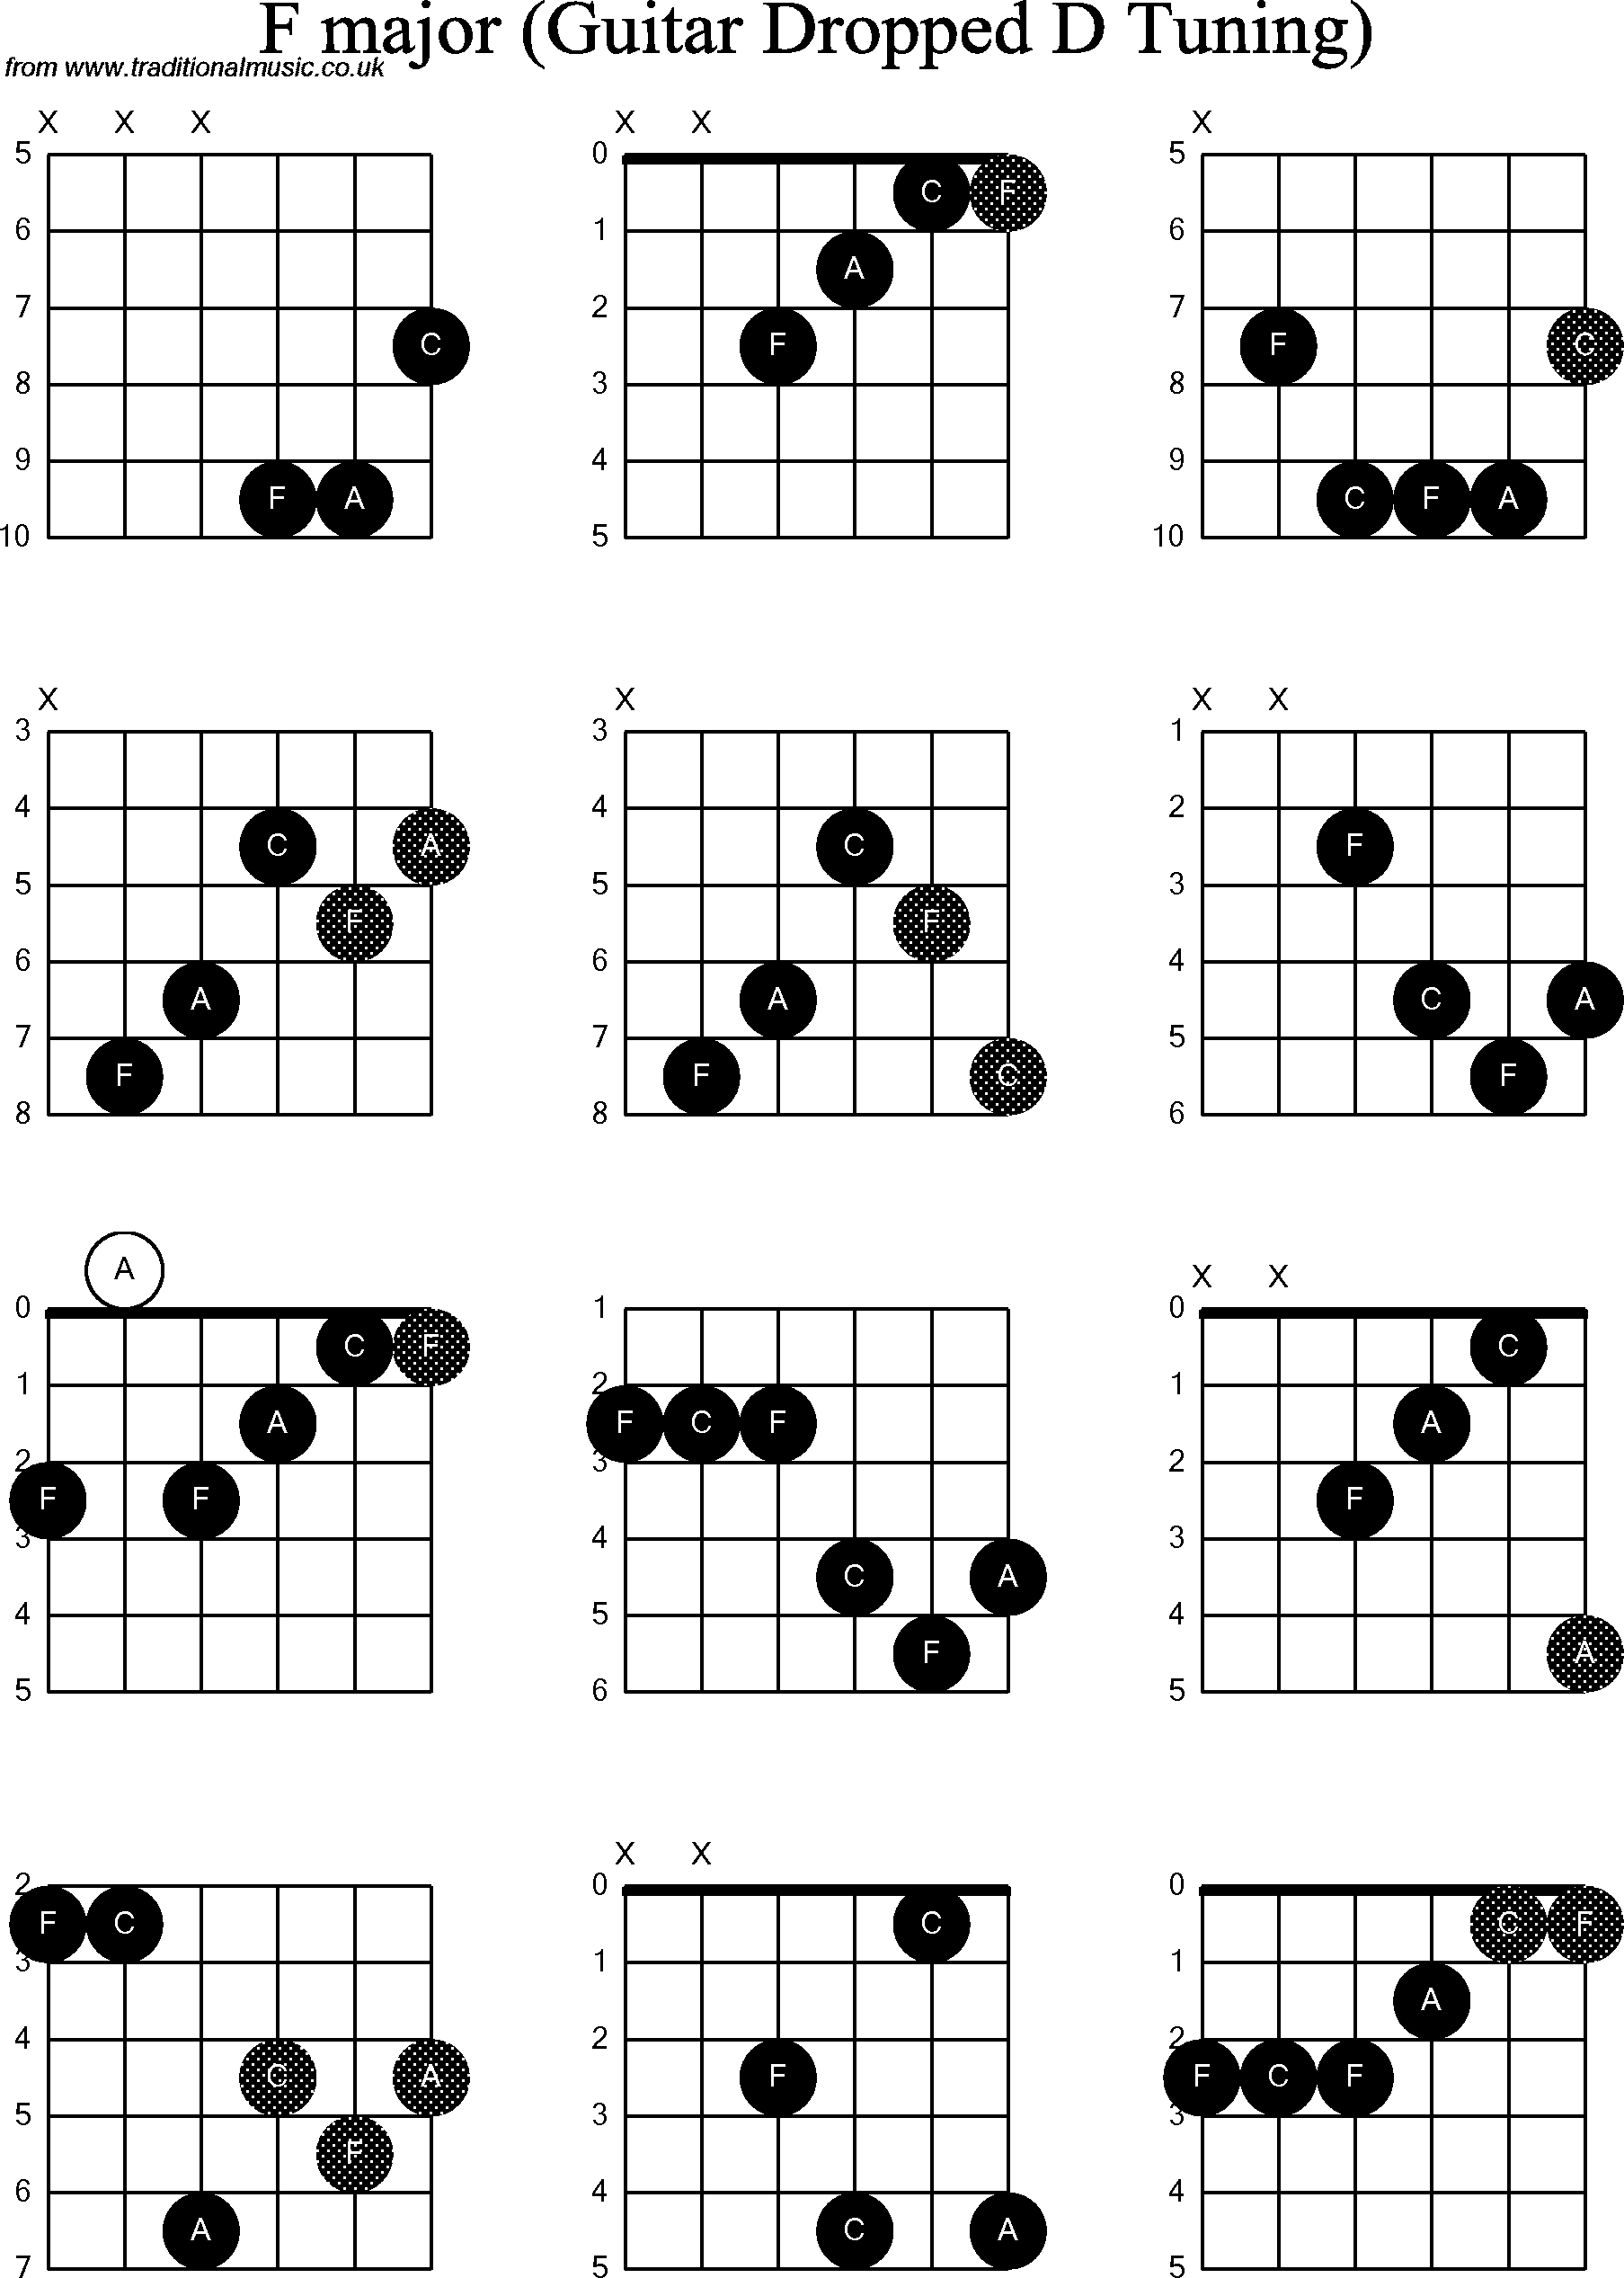 chord diagrams for dropped d guitar dadgbe   f